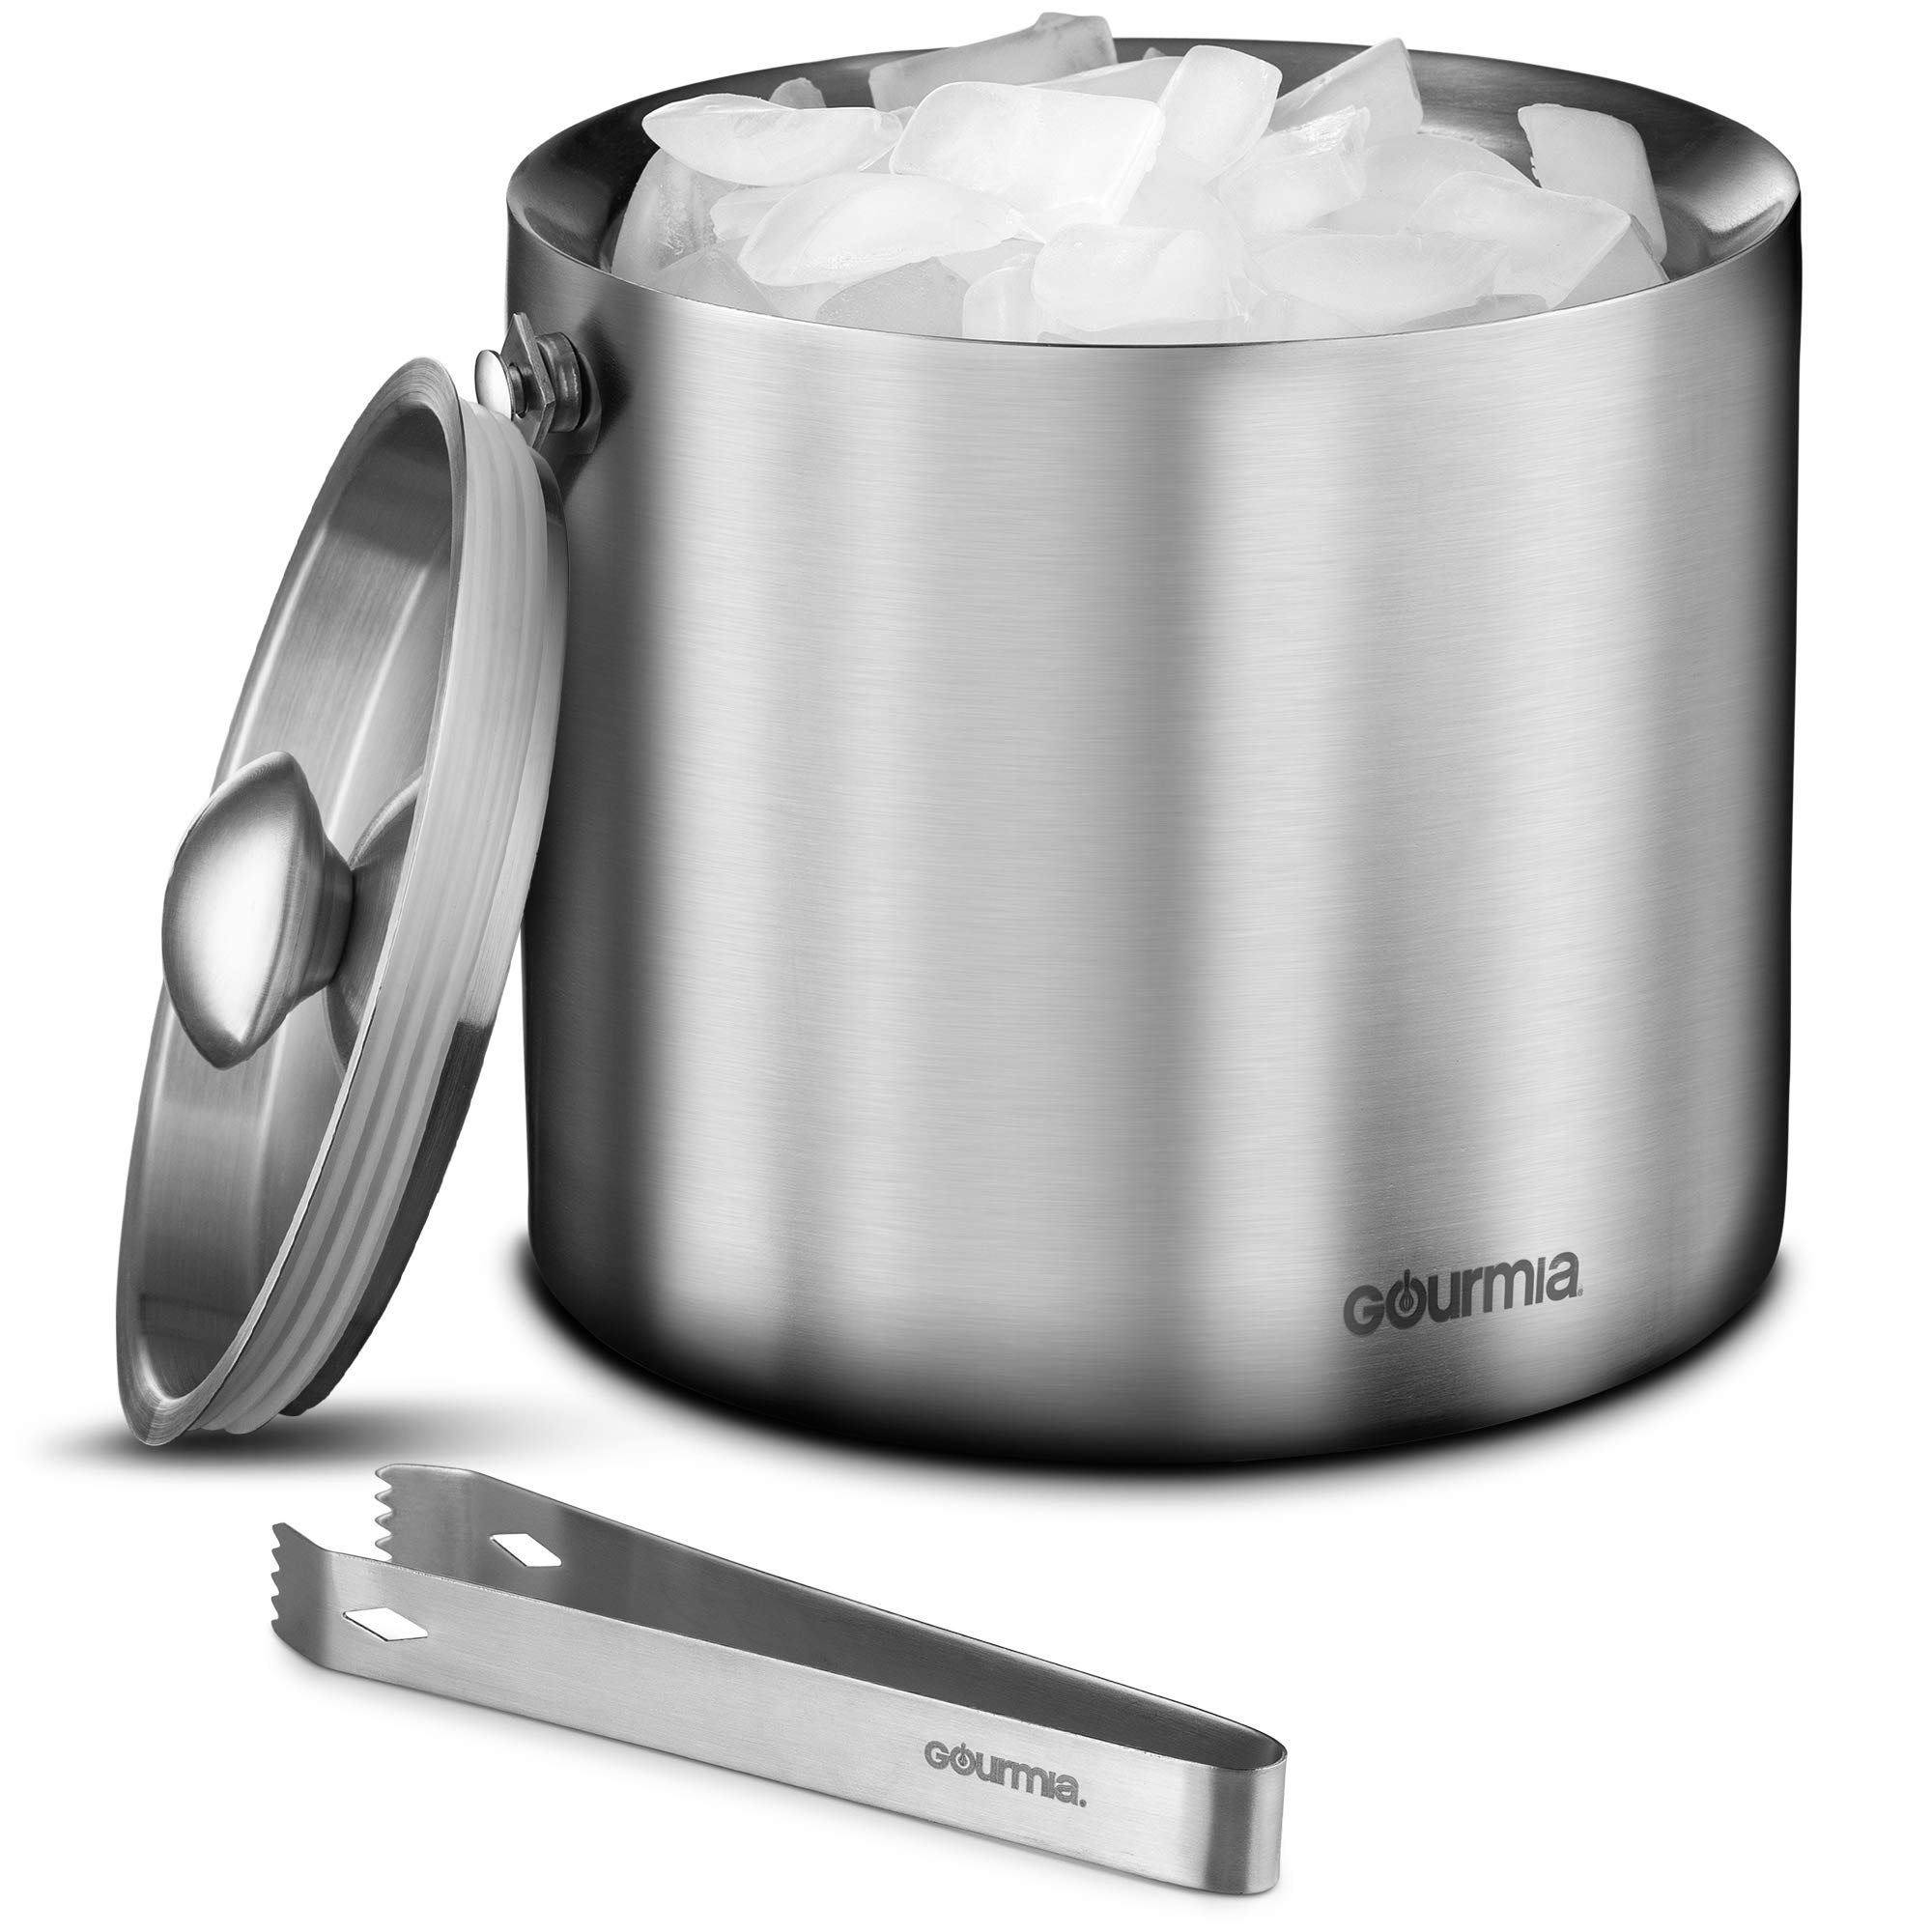 Gourmia GIB9385 Stainless Steel Ice Bucket With Tongs - 3 Liter Double Walled Insulated with Airtight Leak Resistant Lid and Carrying Handle - Mirror Polish Finish - Elegant Gift